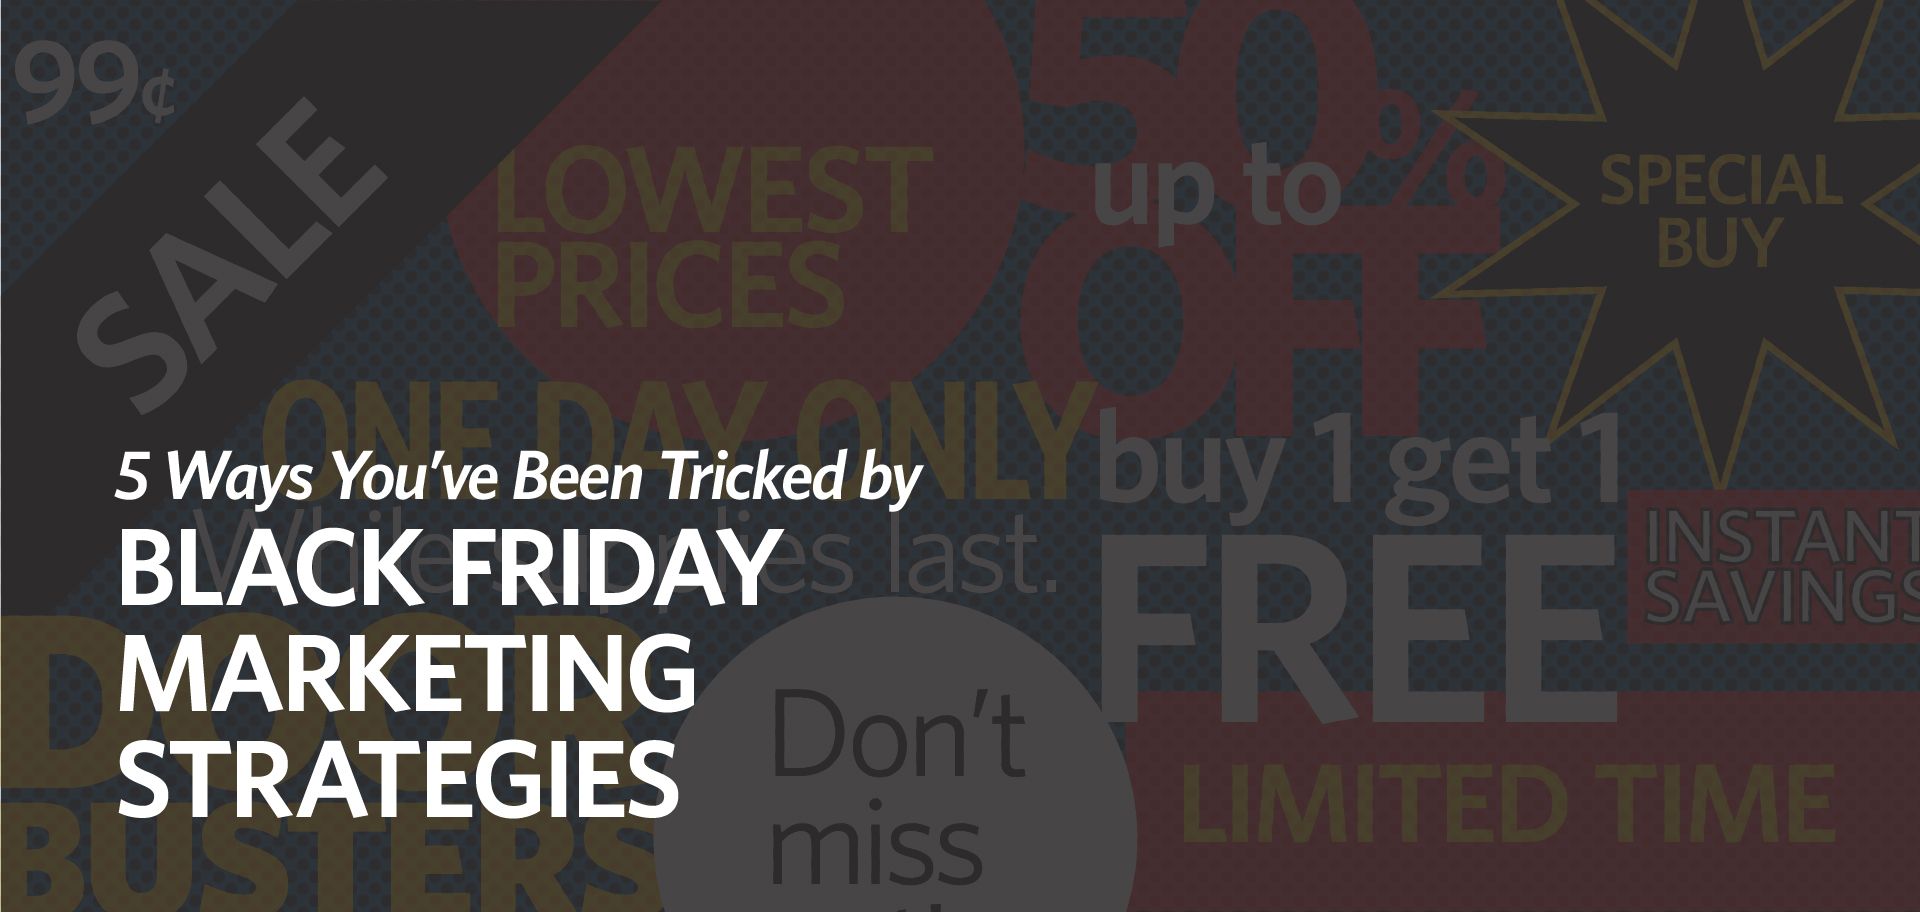 Black Friday Marketing Strategies Kettle Fire Creative black friday marketing 5 Ways You've Been Tricked by Black Friday Marketing Strategies black friday fi